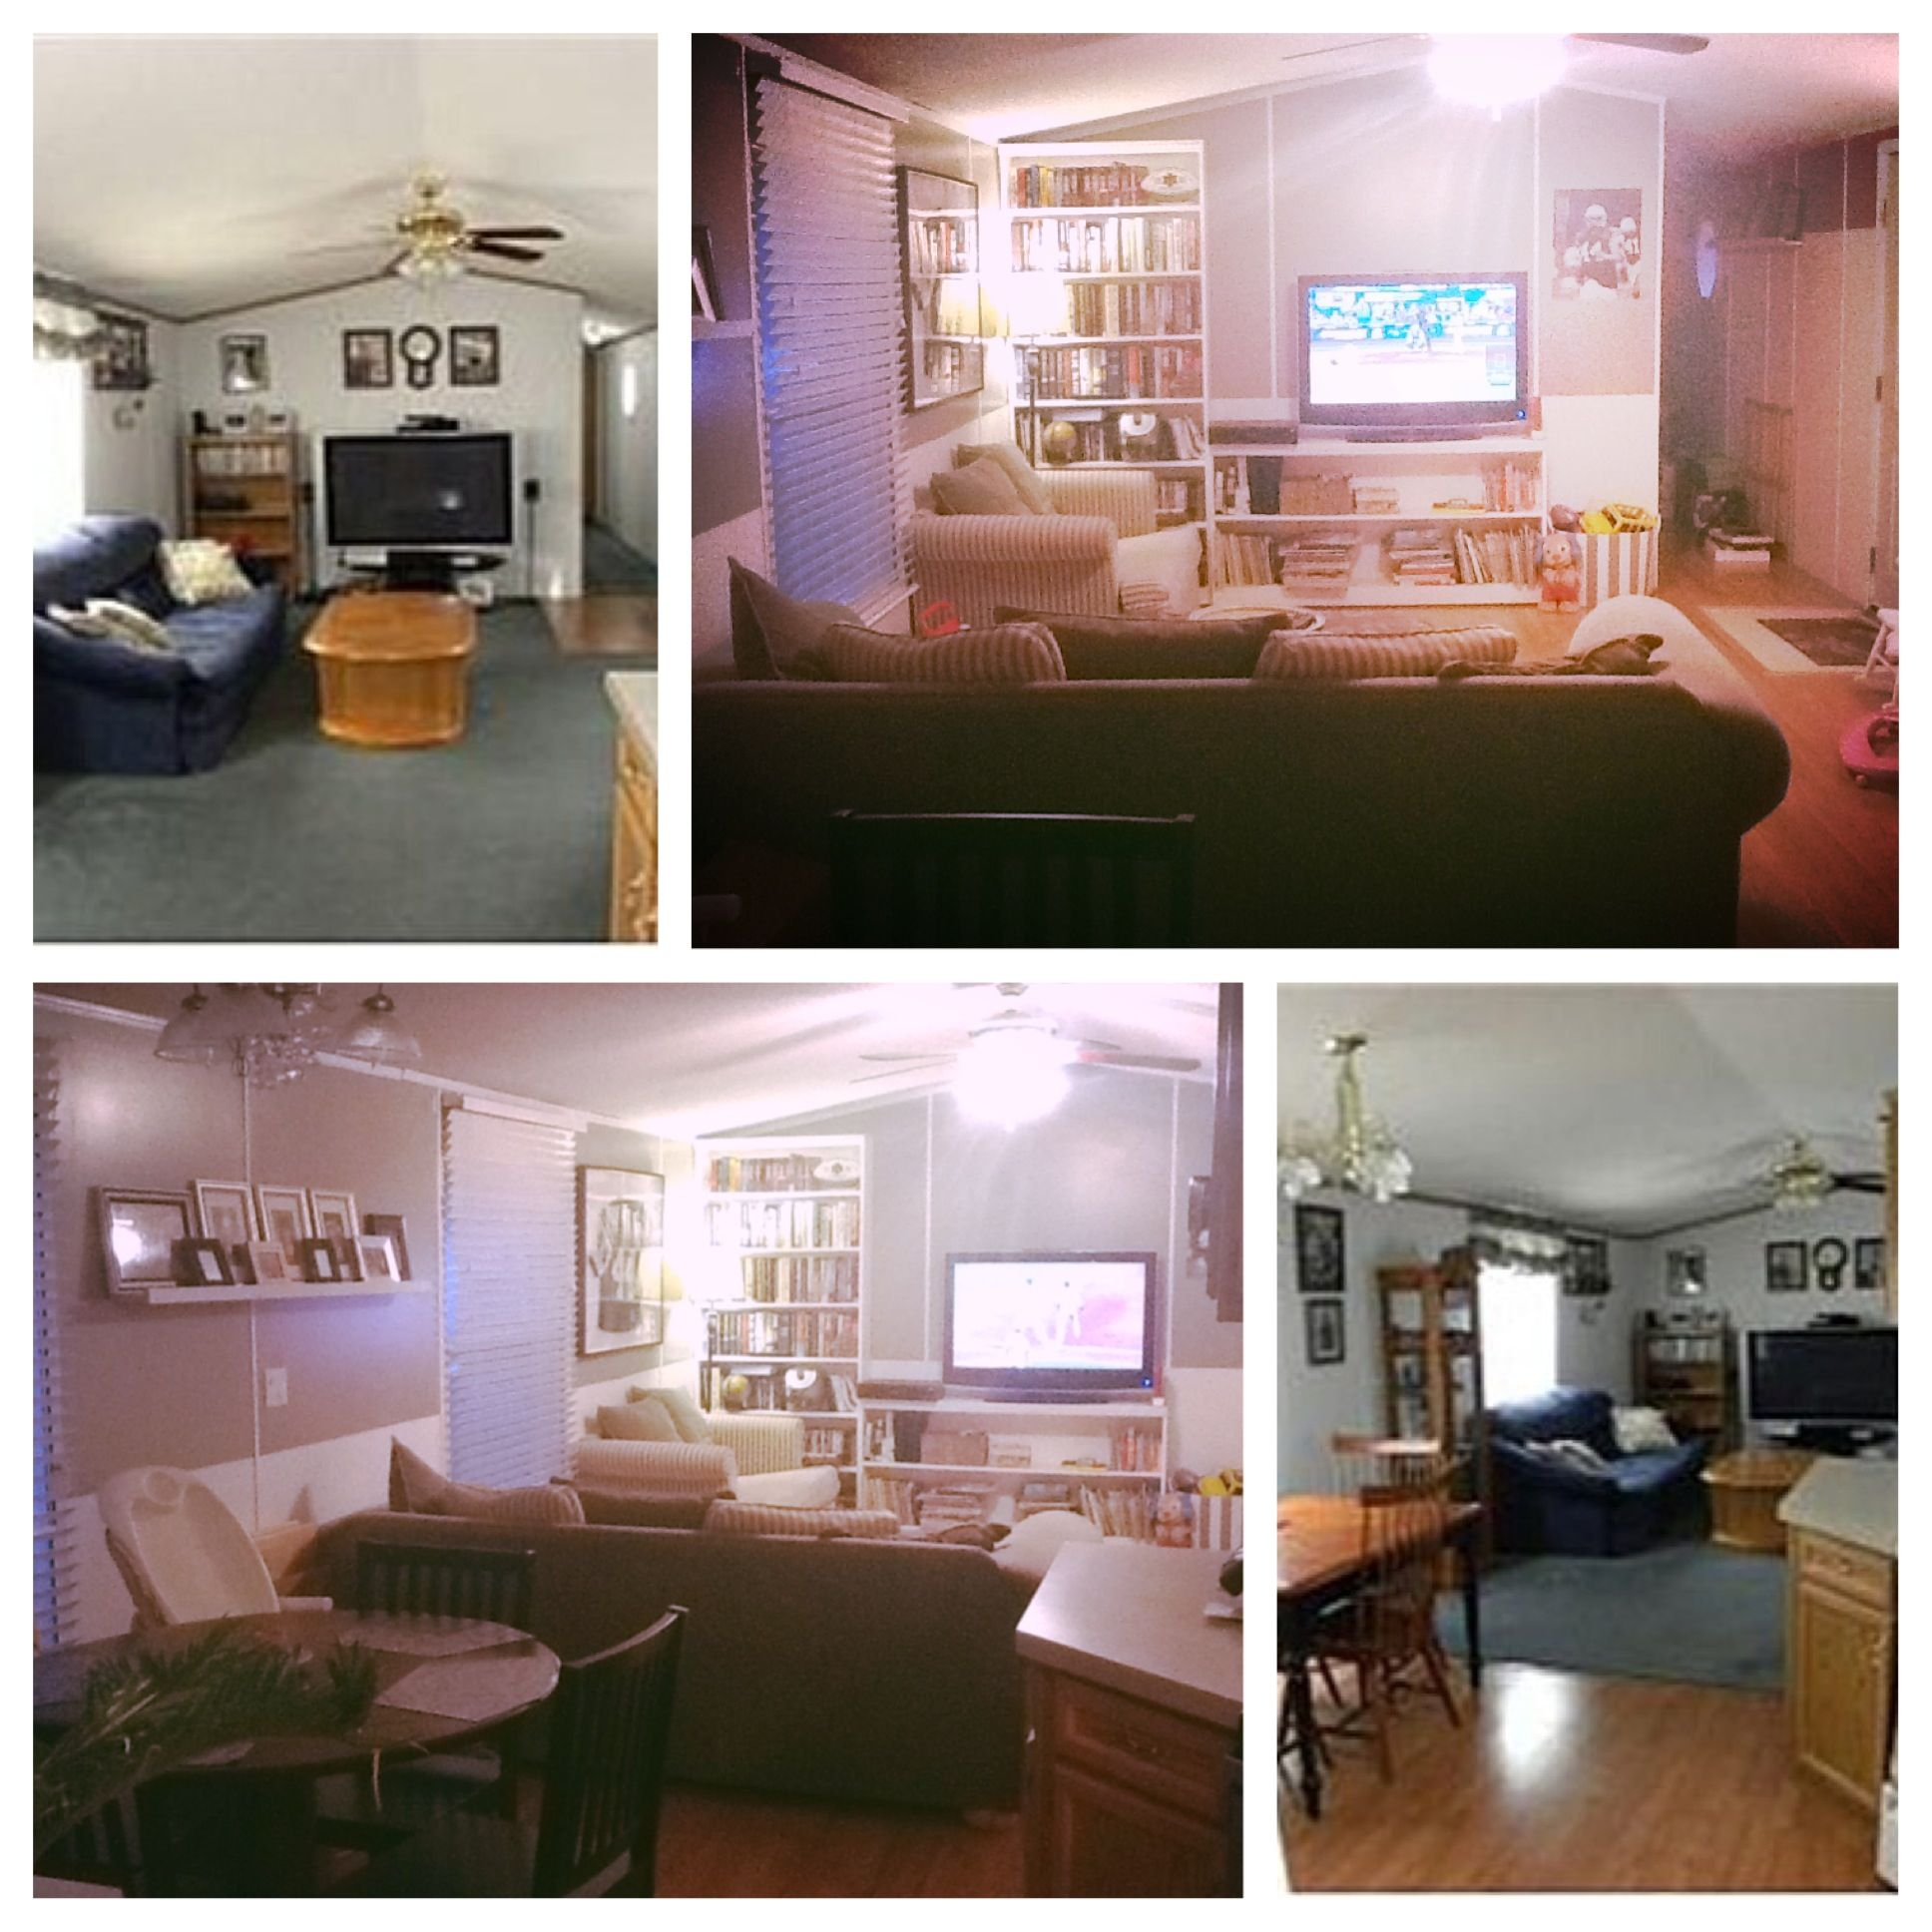 Home Makover: More Before And After Makeover Pictures Of Our Single Wide